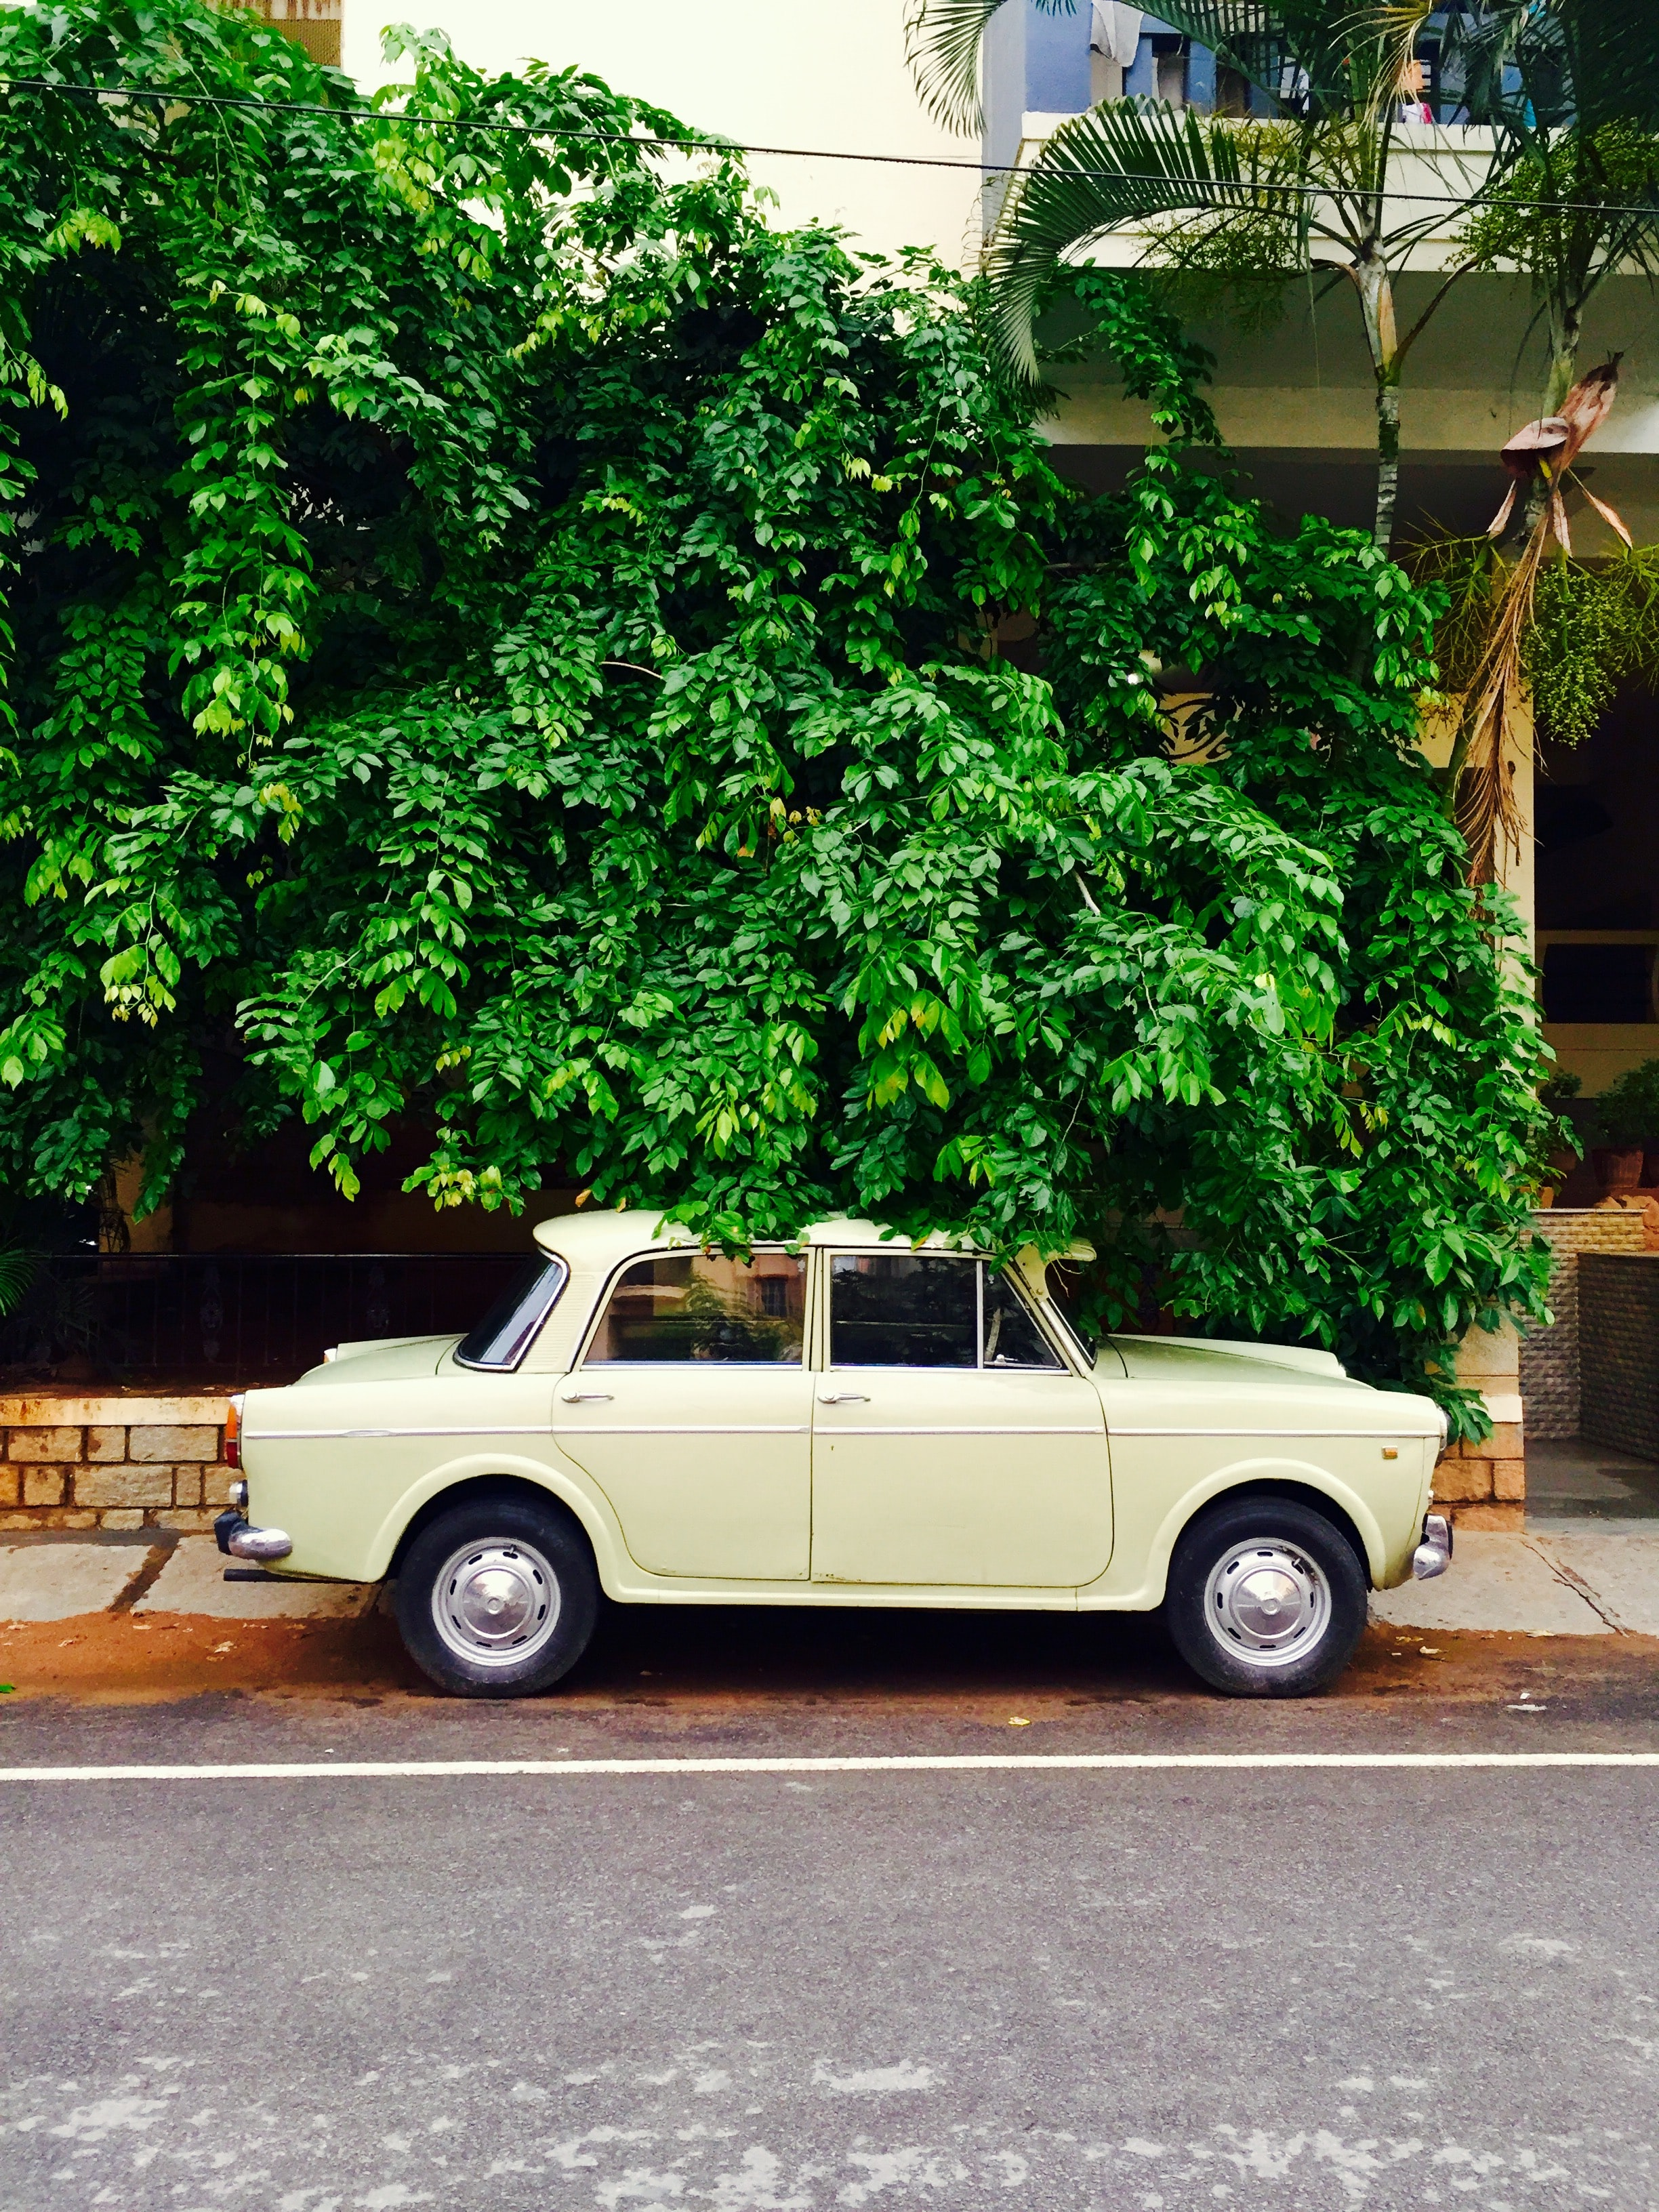 Retro cream colored car parked on pavement under overgrown tree in Bengaluru